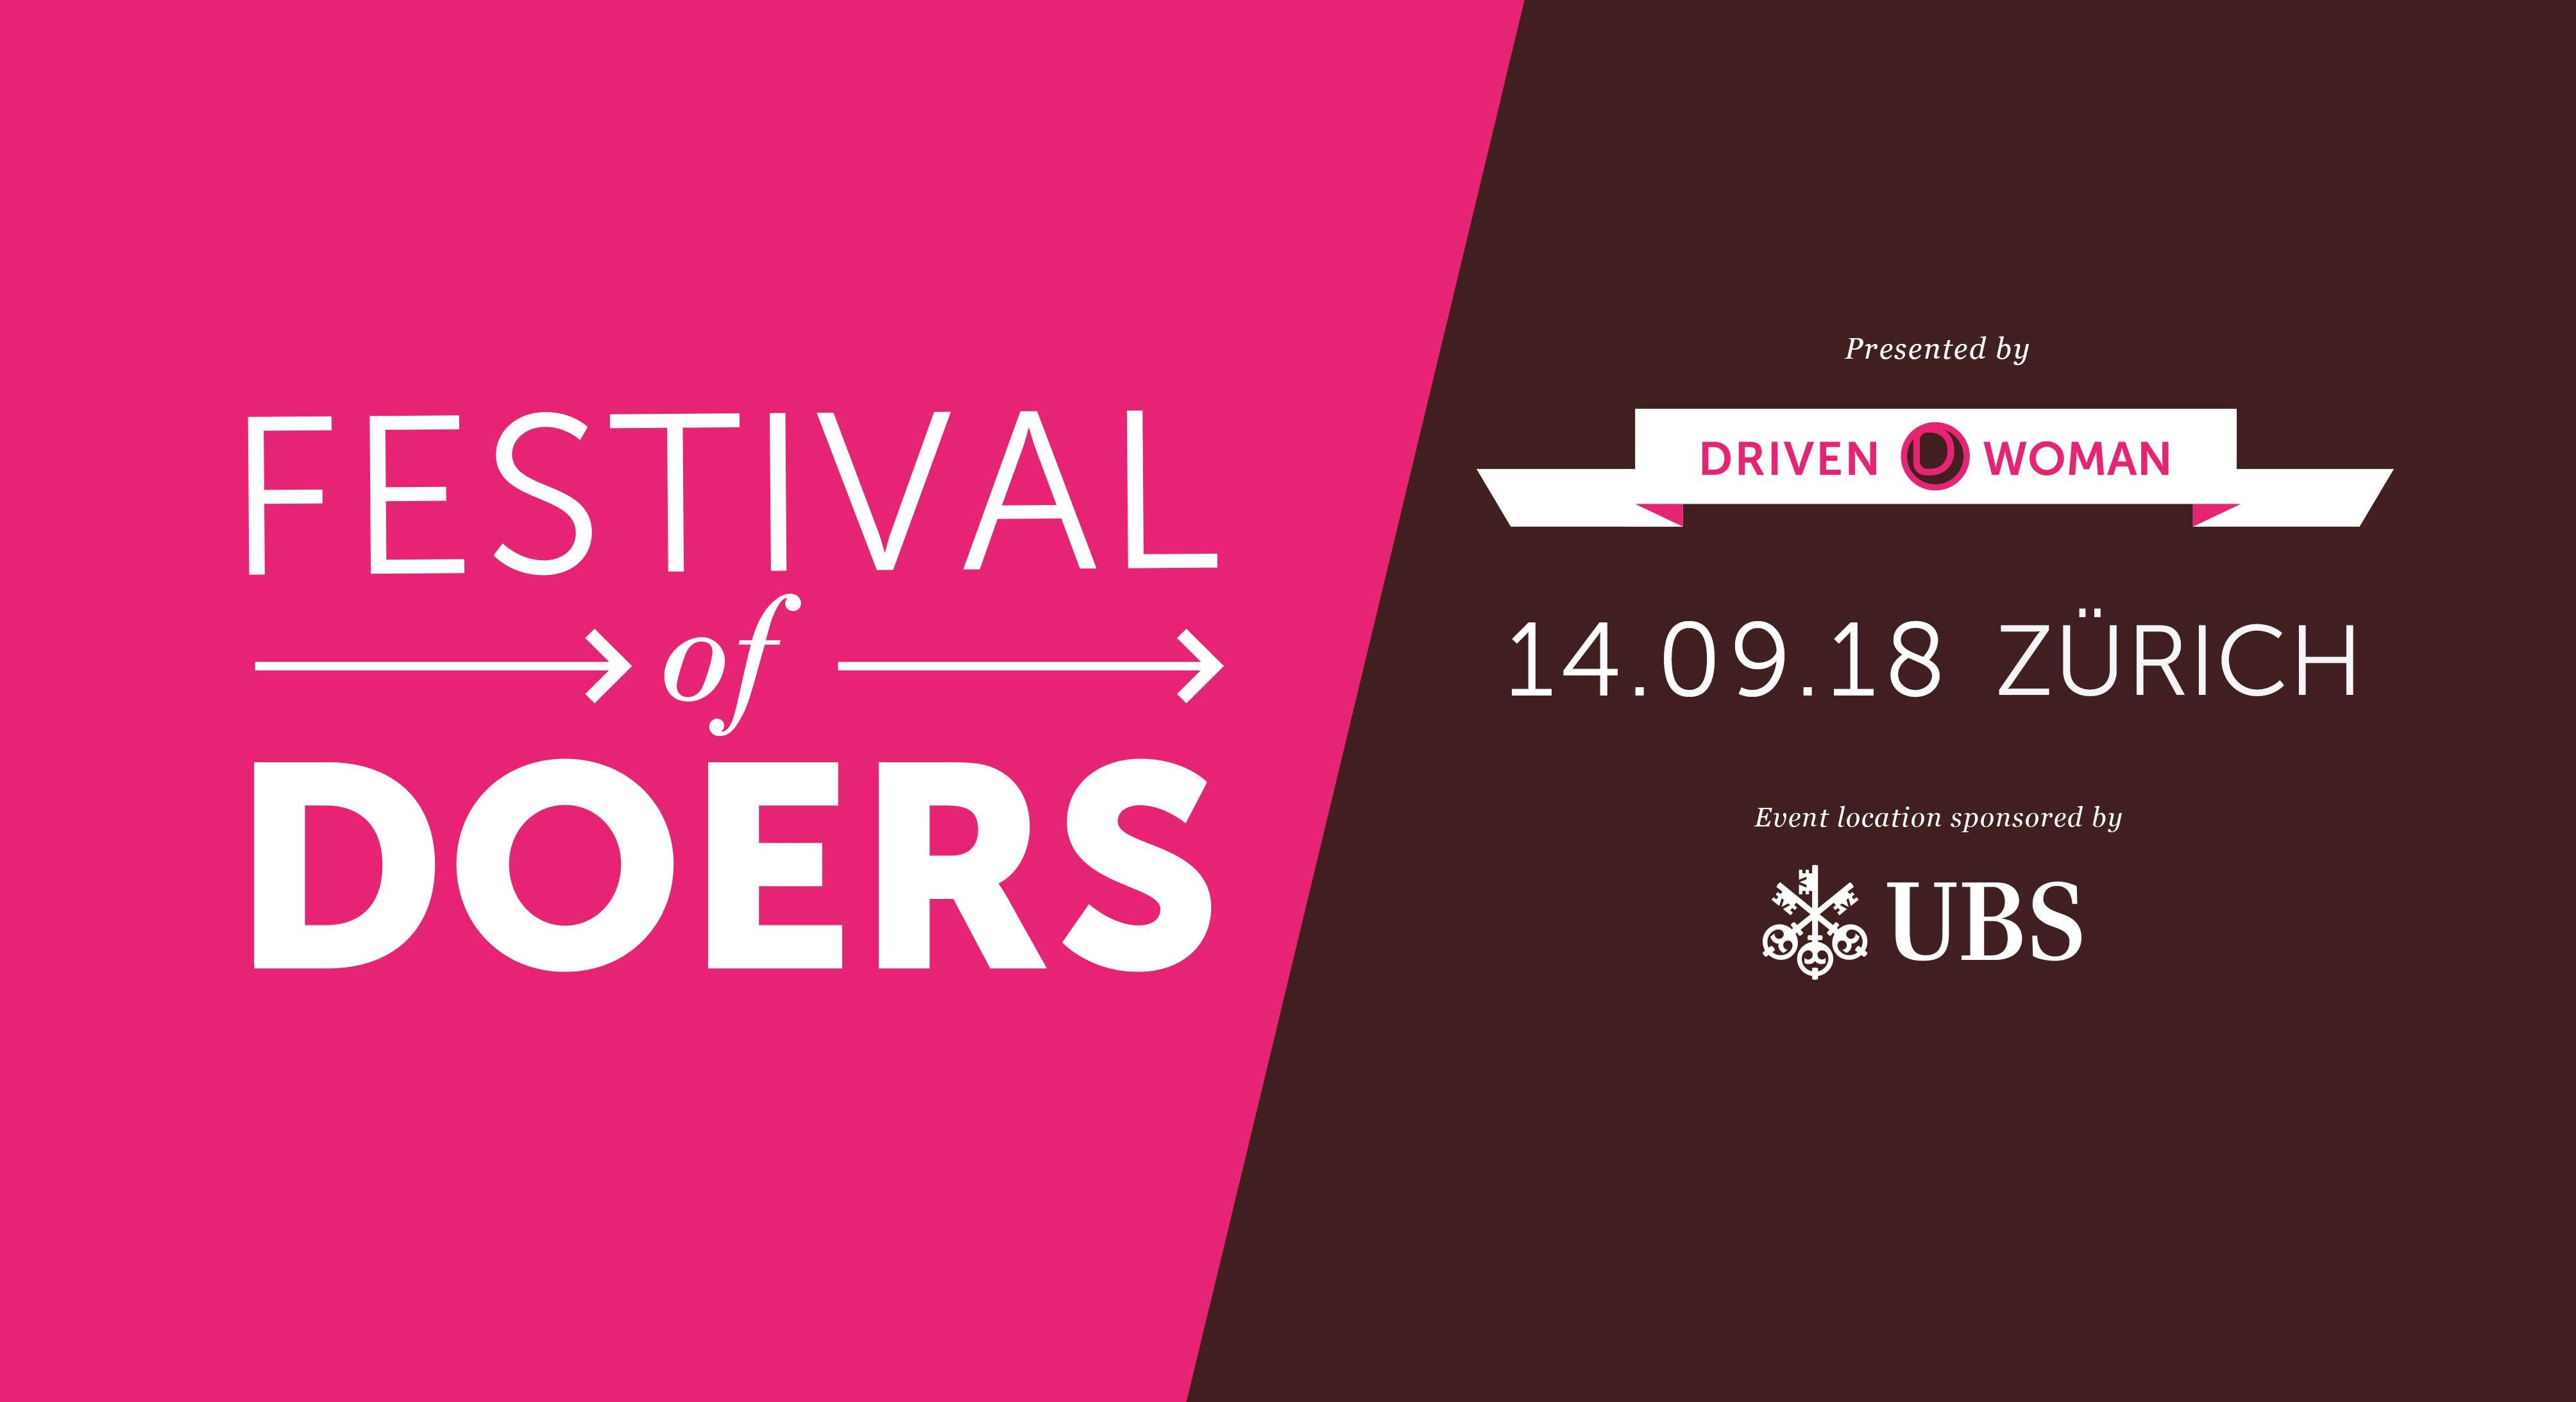 FESTIVAL OF DOERS - THE MOST EMPOWERING DAY OF THE YEAR